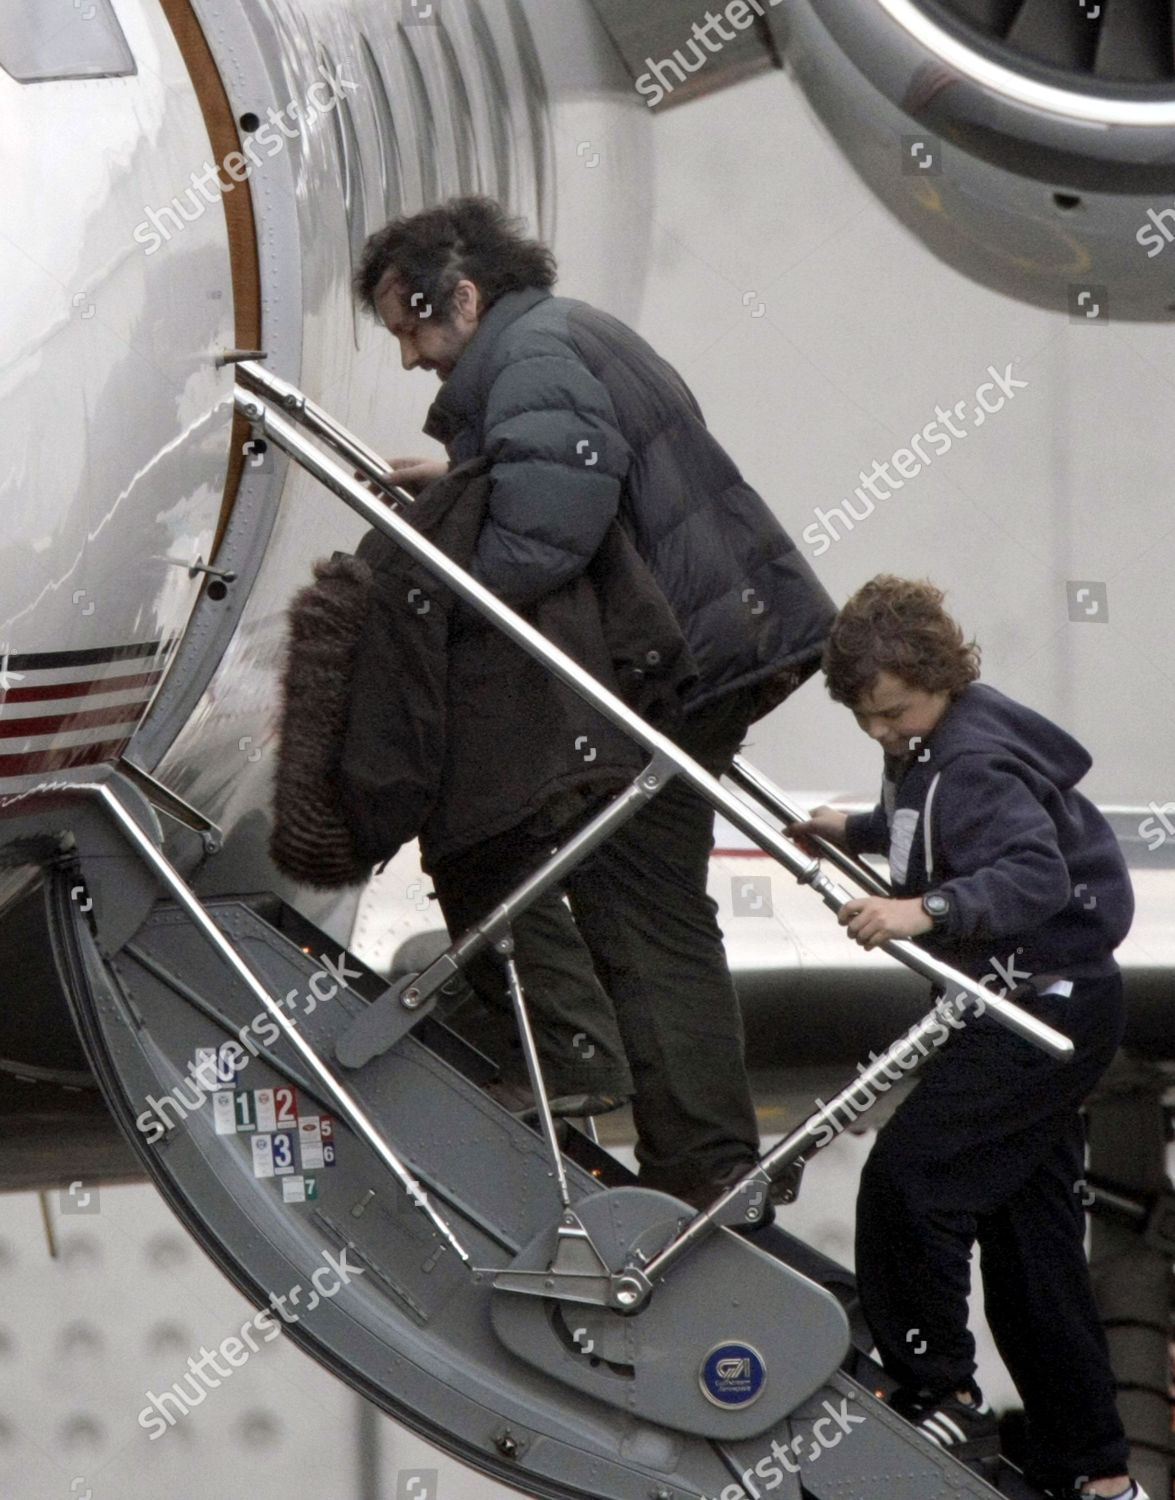 Peter Jackson boarding aeroplane his son Billy Editorial